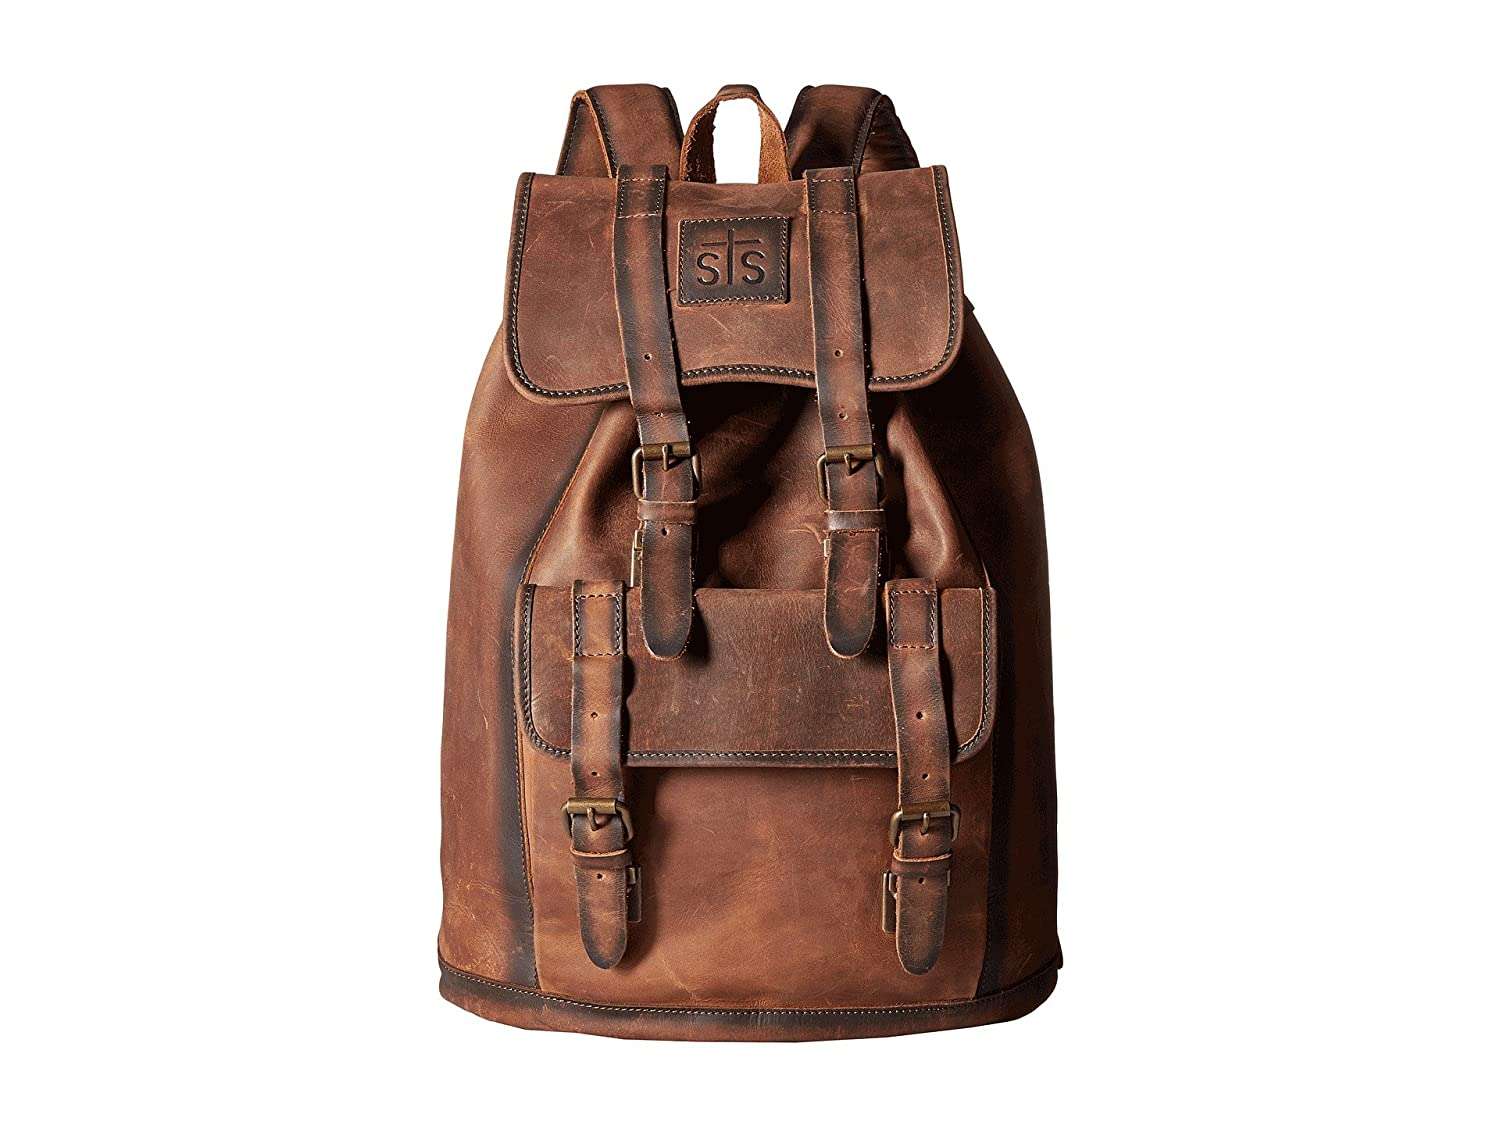 [STSランチウェア] STS Ranchwear メンズ The Foreman Backpack バックパック [並行輸入品] B01N66FYD0 Brown Leather